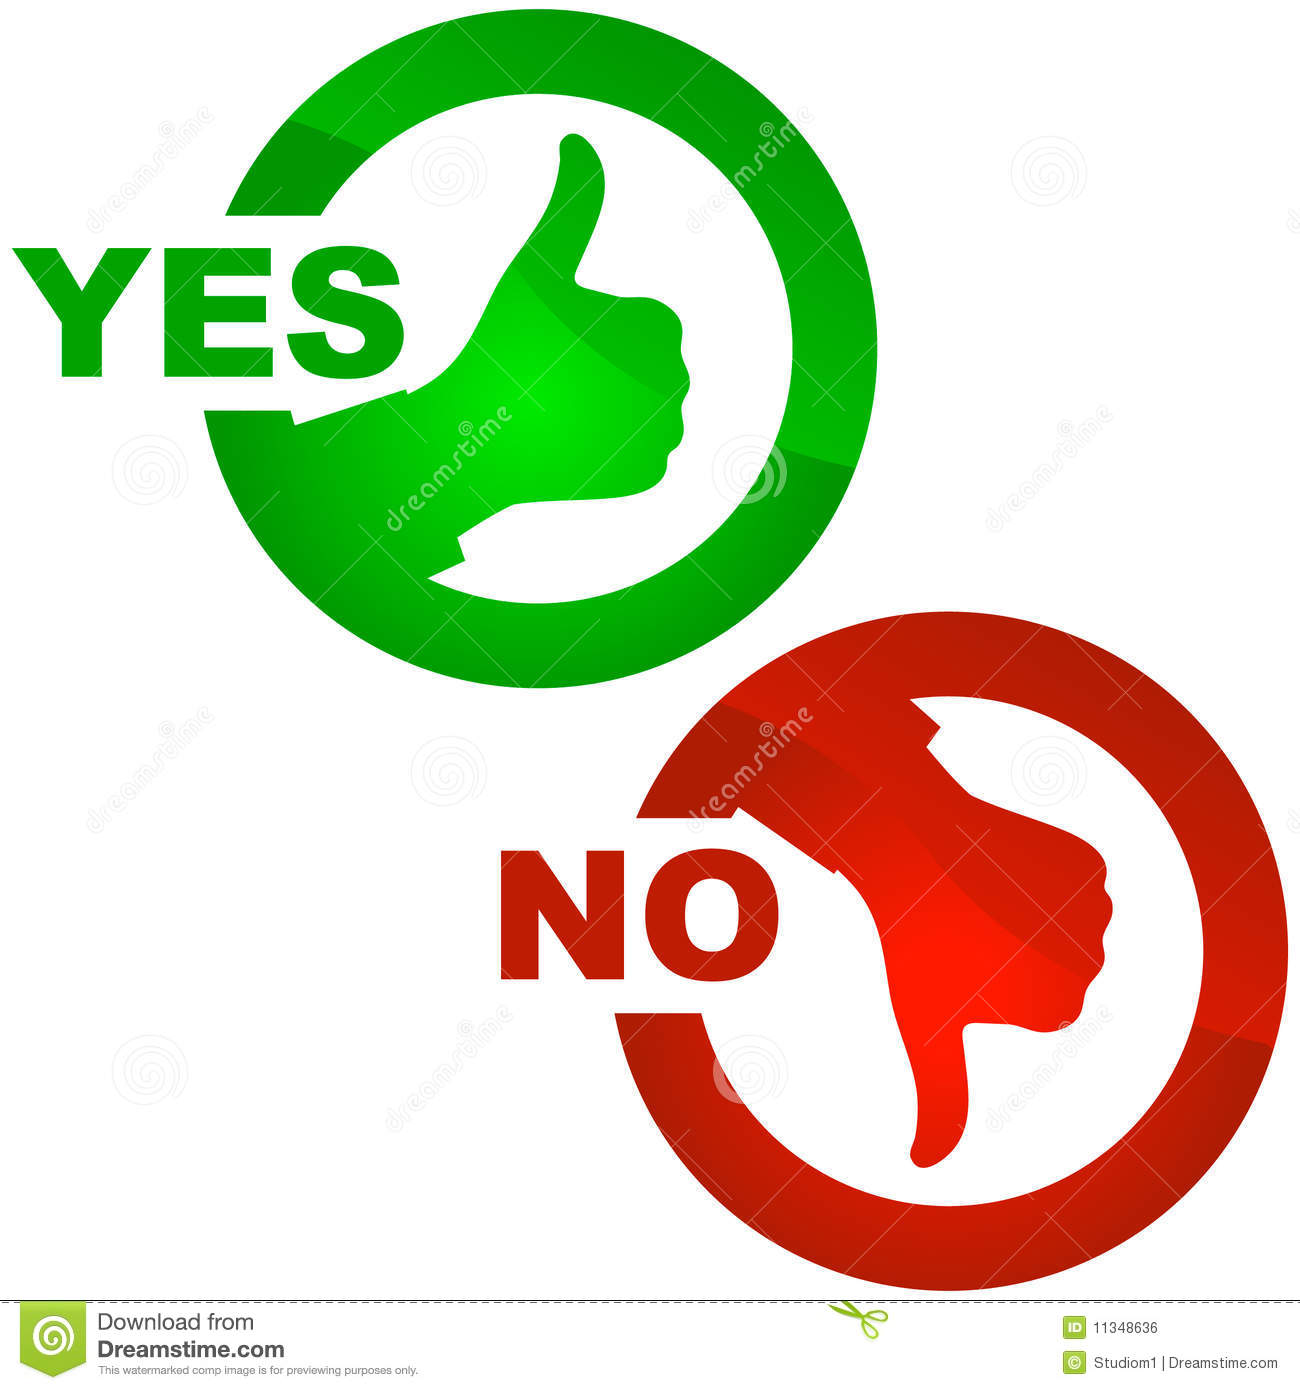 Clipart Yes No.